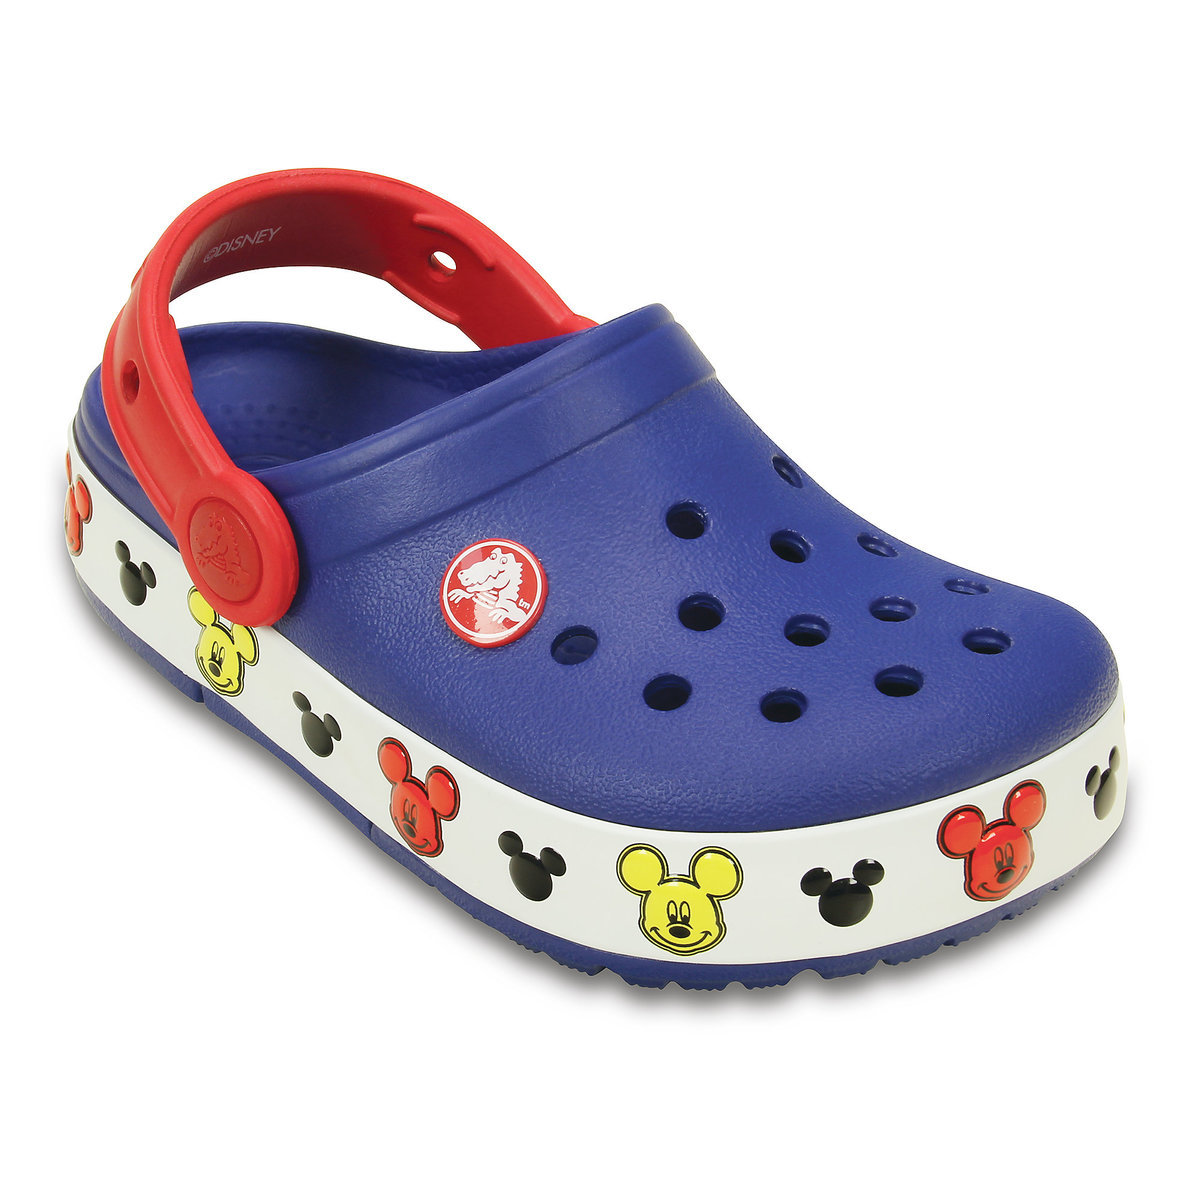 3809ce9127 Product Image of Mickey Mouse Crocs™ Light-Up Clogs for Kids - Blue